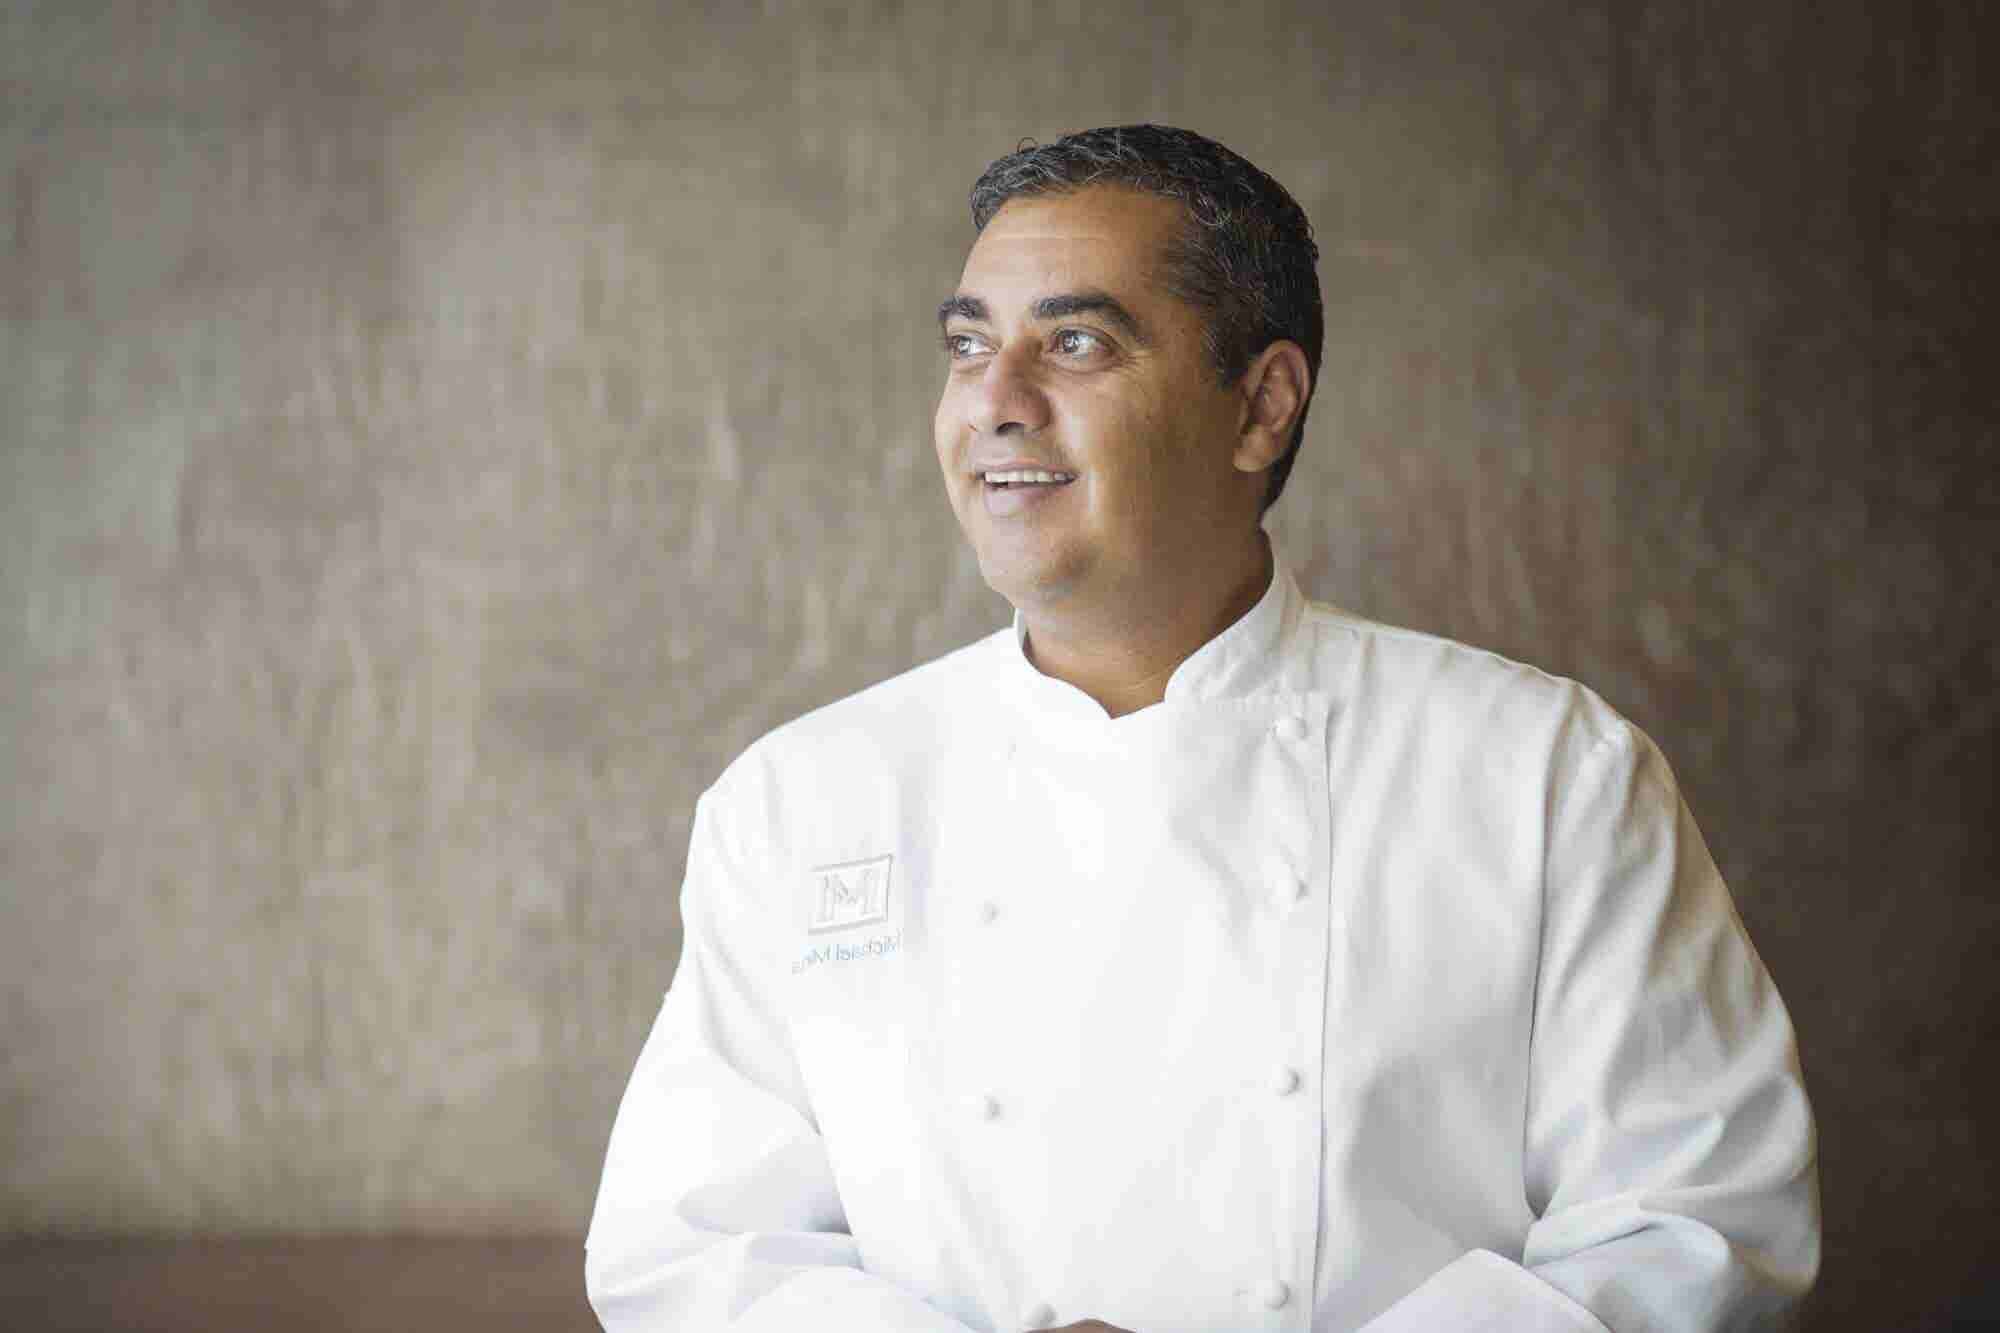 Chef Michael Mina's Formula On Setting His Enterprise Apart From Its Competitors